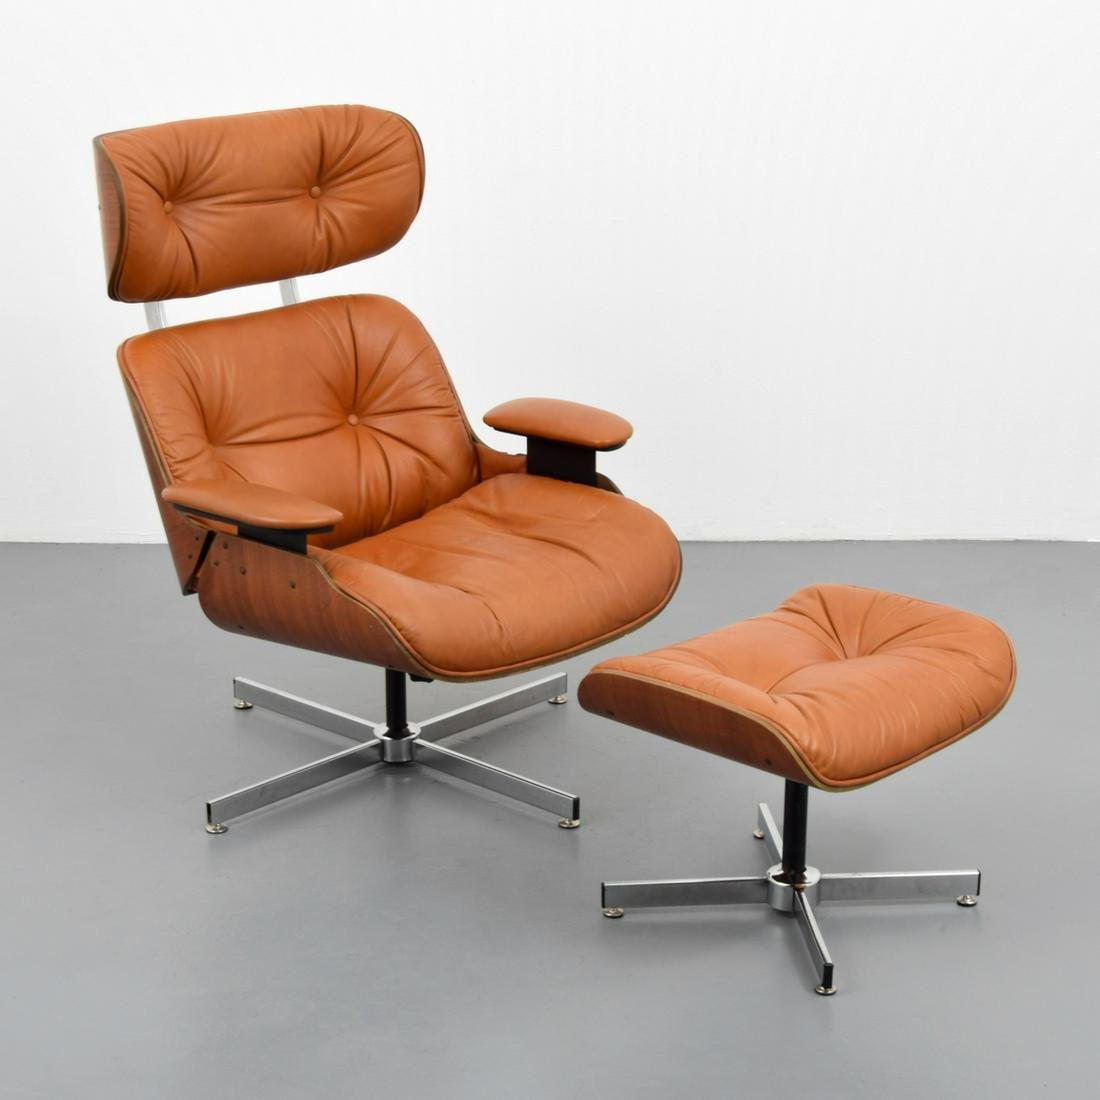 Selig Lounge Chair & Ottoman, Manner of Charles & Ray